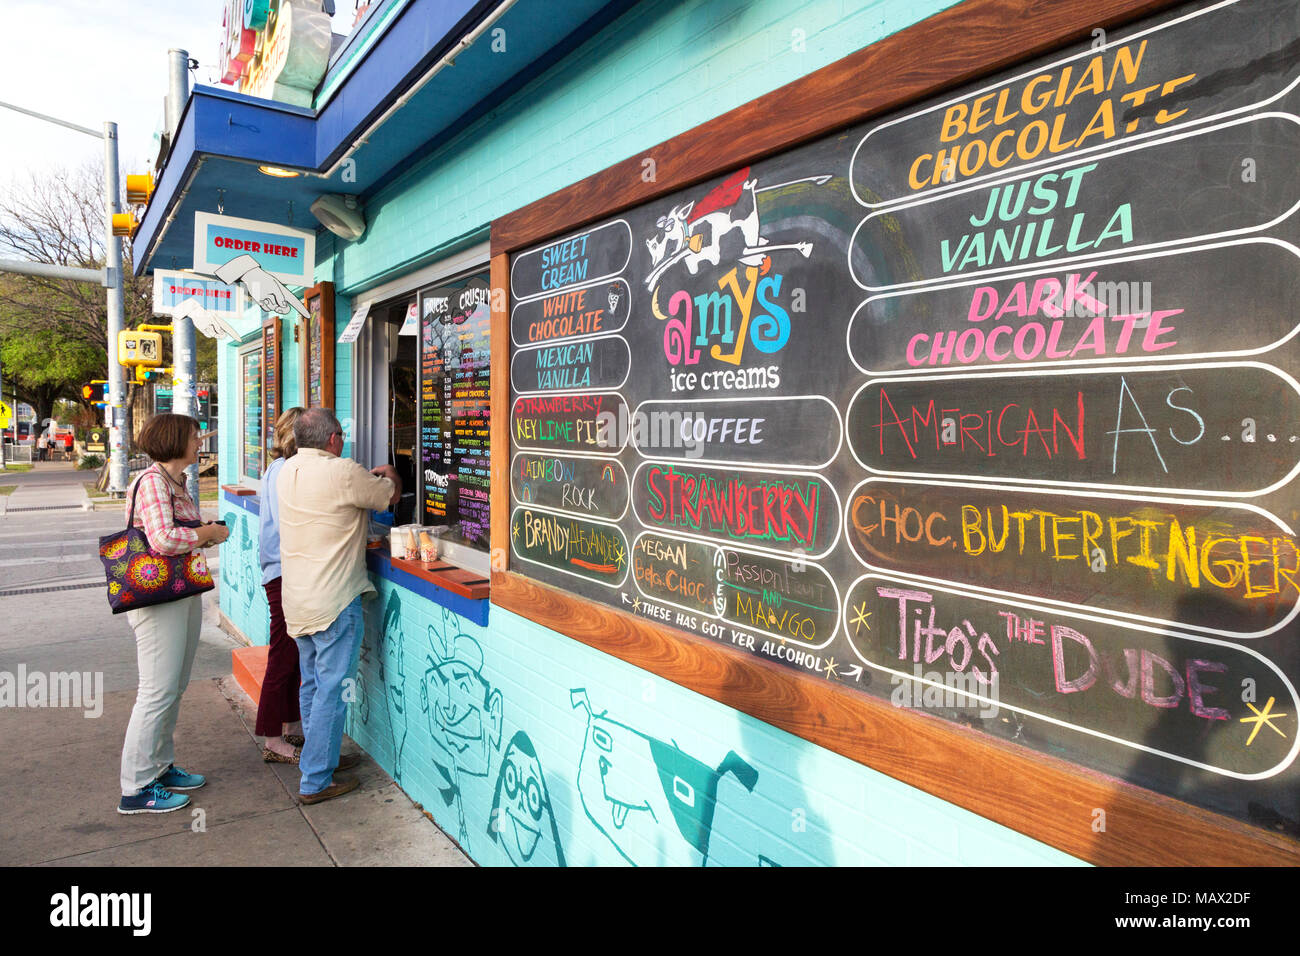 Ice cream USA - ice cream flavours on the board outside Amy's Ice Creams, South Congress Avenue, downtown Austin, Texas USA - Stock Image